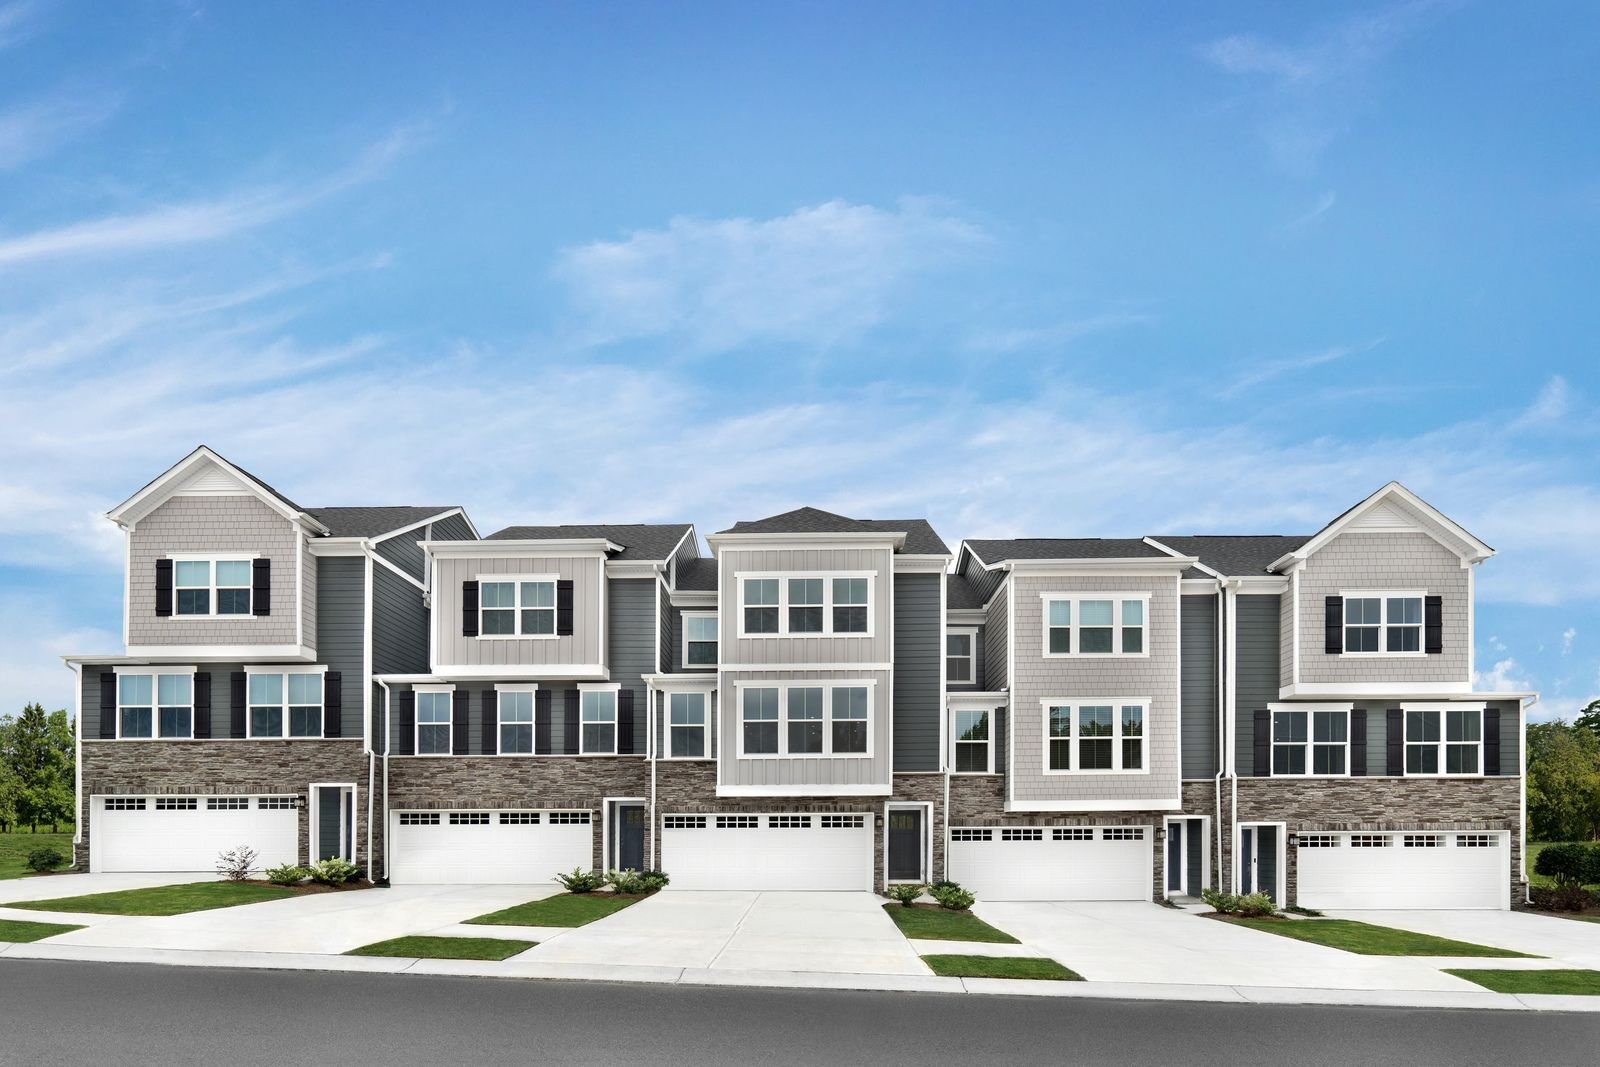 NEW TOWNHOMES WITH COX MILL SCHOOLS FROM THE LOW $400s:Own a townhome with no maintenance & in a location convenient to I-485.Join the VIP List to be among the first to own at Oaklawn Mills.